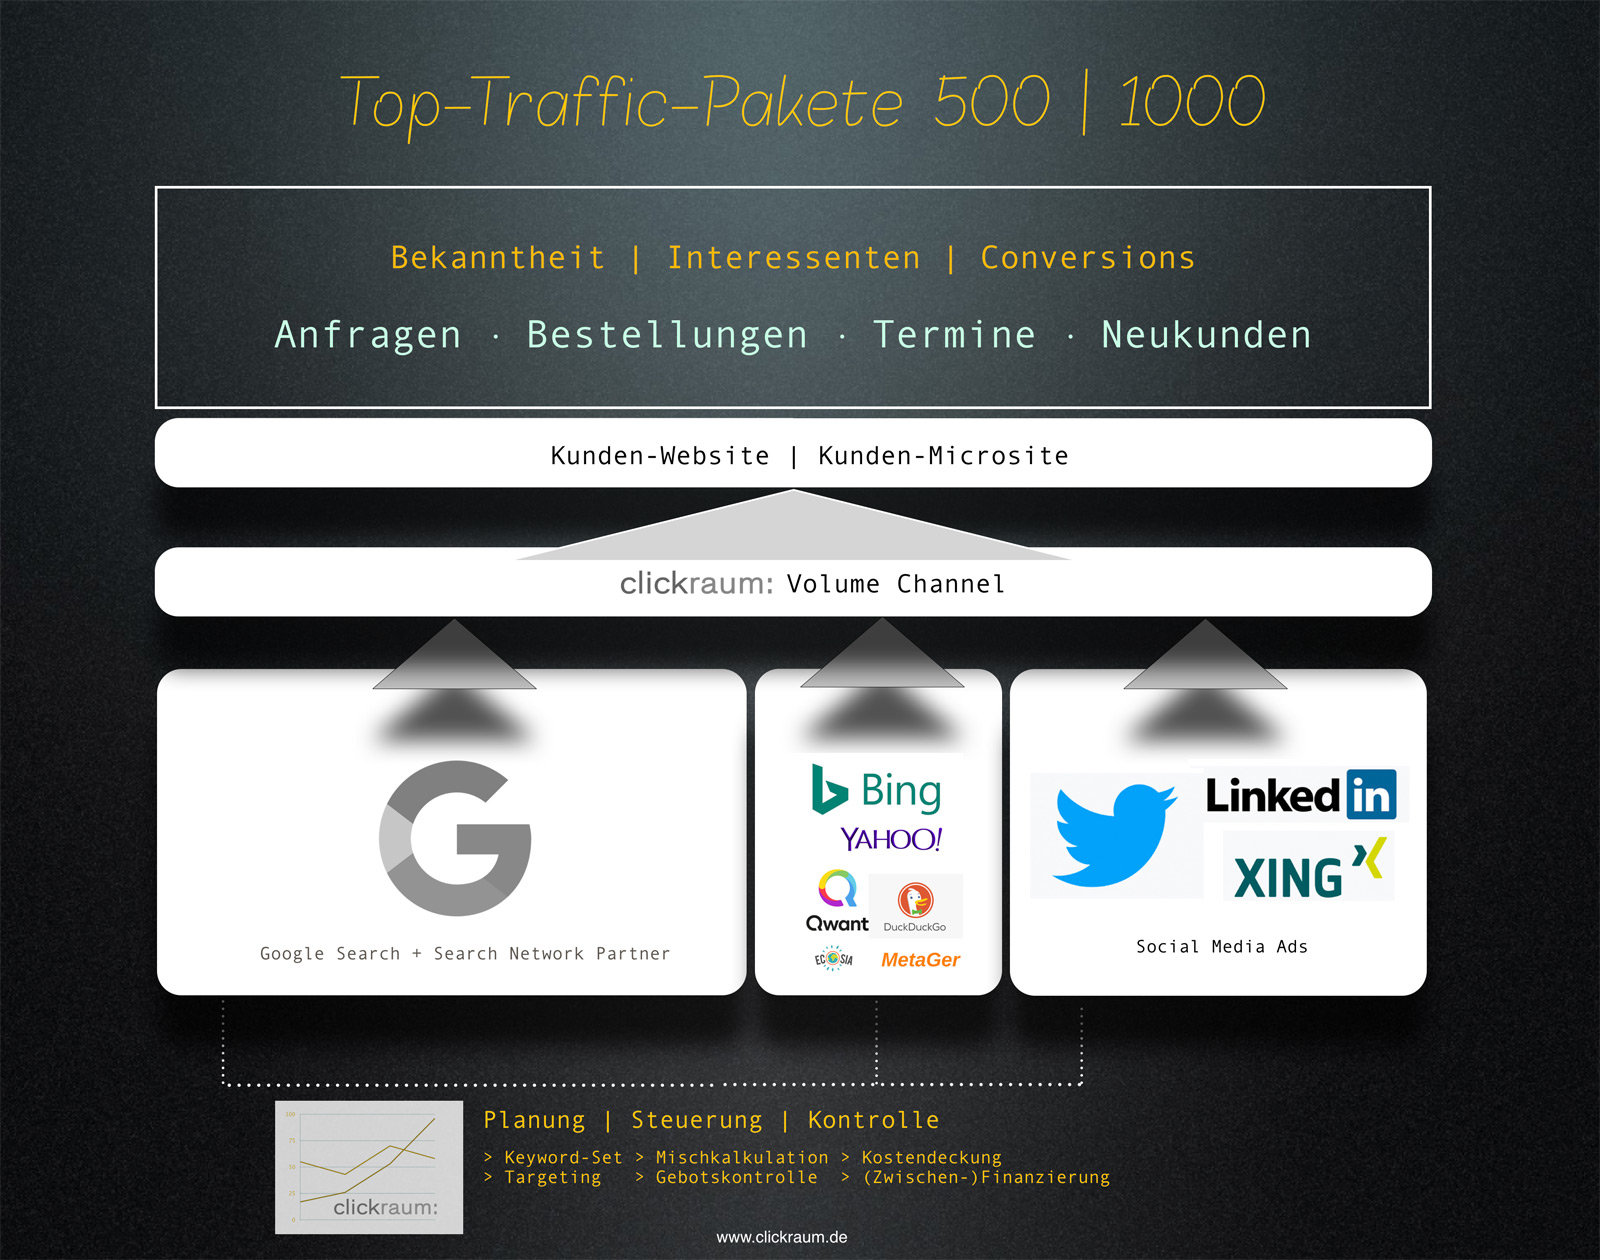 Infografik Top-Traffic-Pakete 500 und 1000